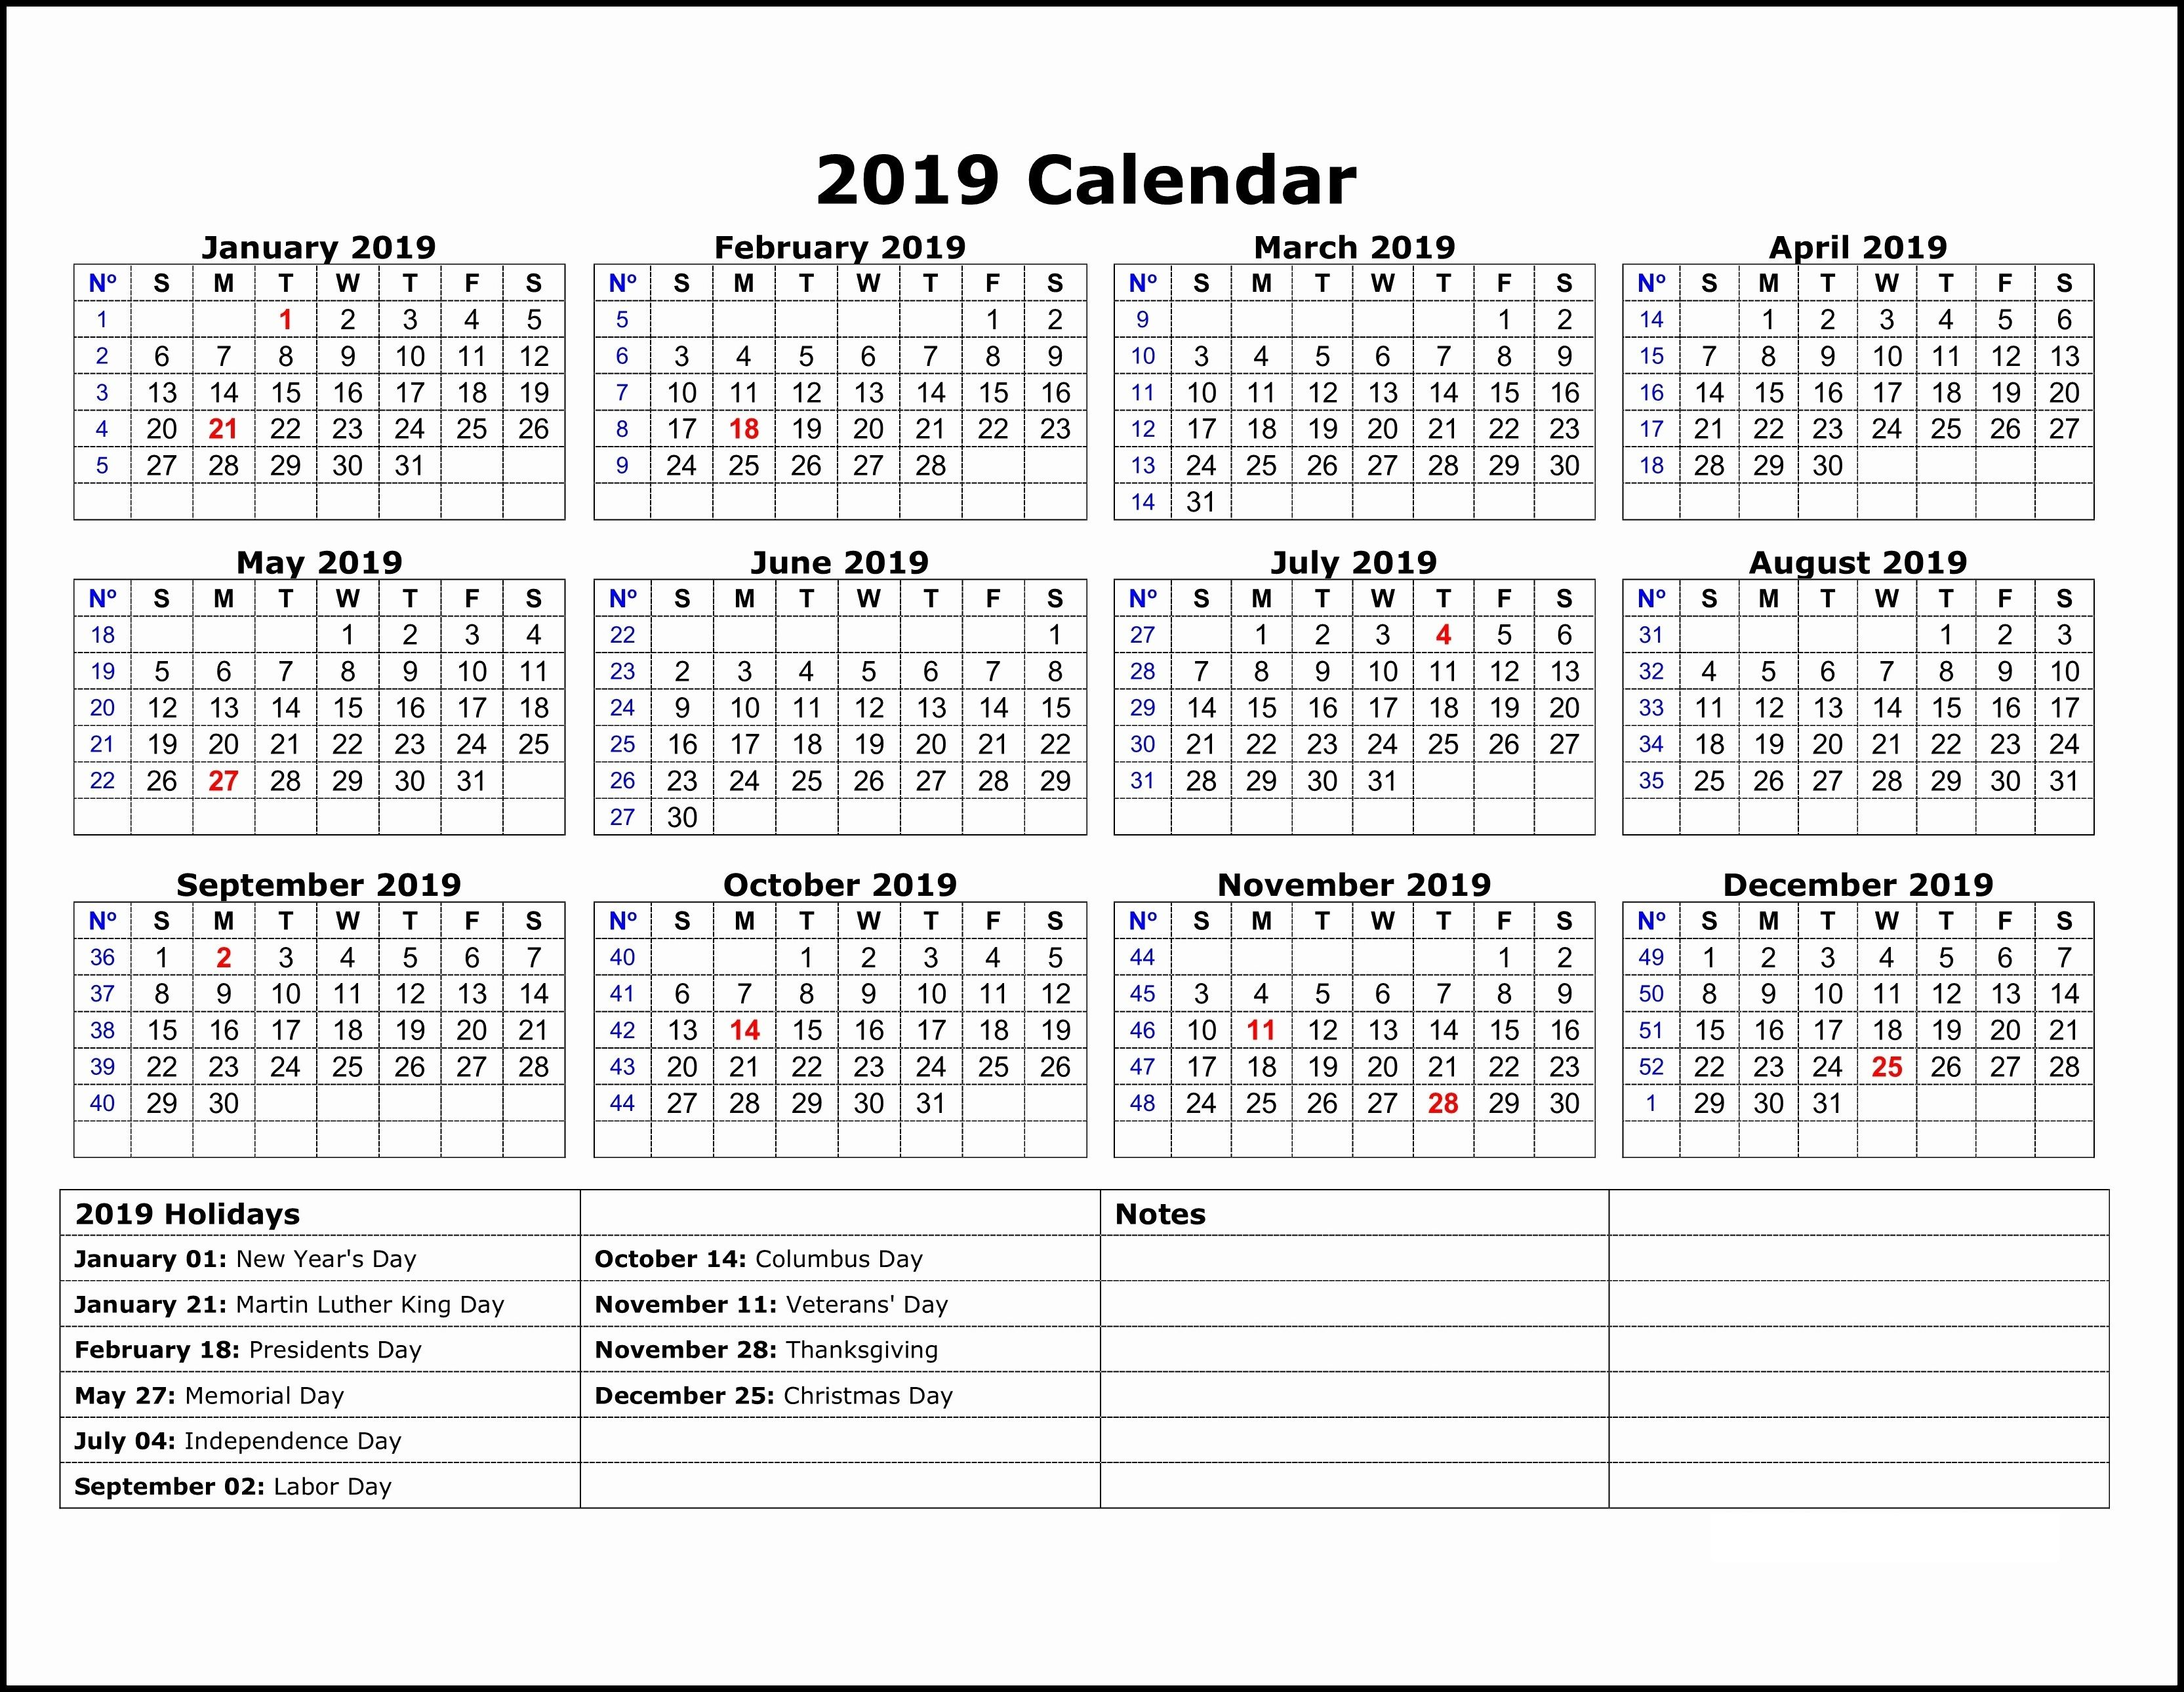 2019 Calendar Template One Note